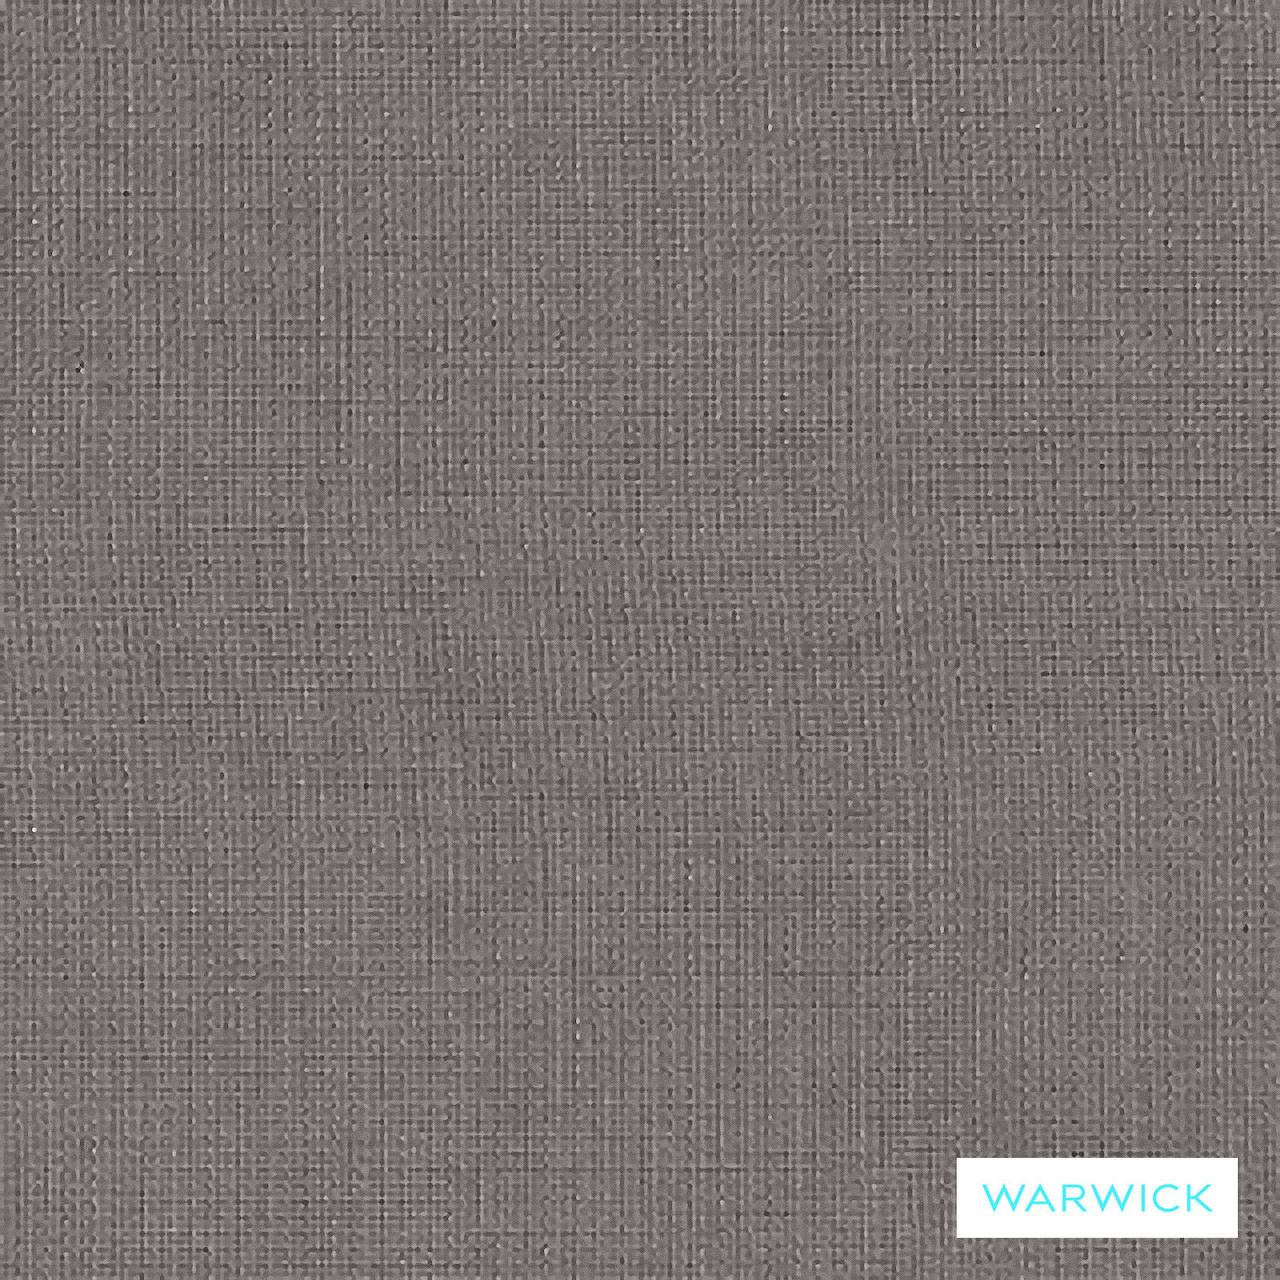 Sydney Fabrics Warwick Haven Dark Grey